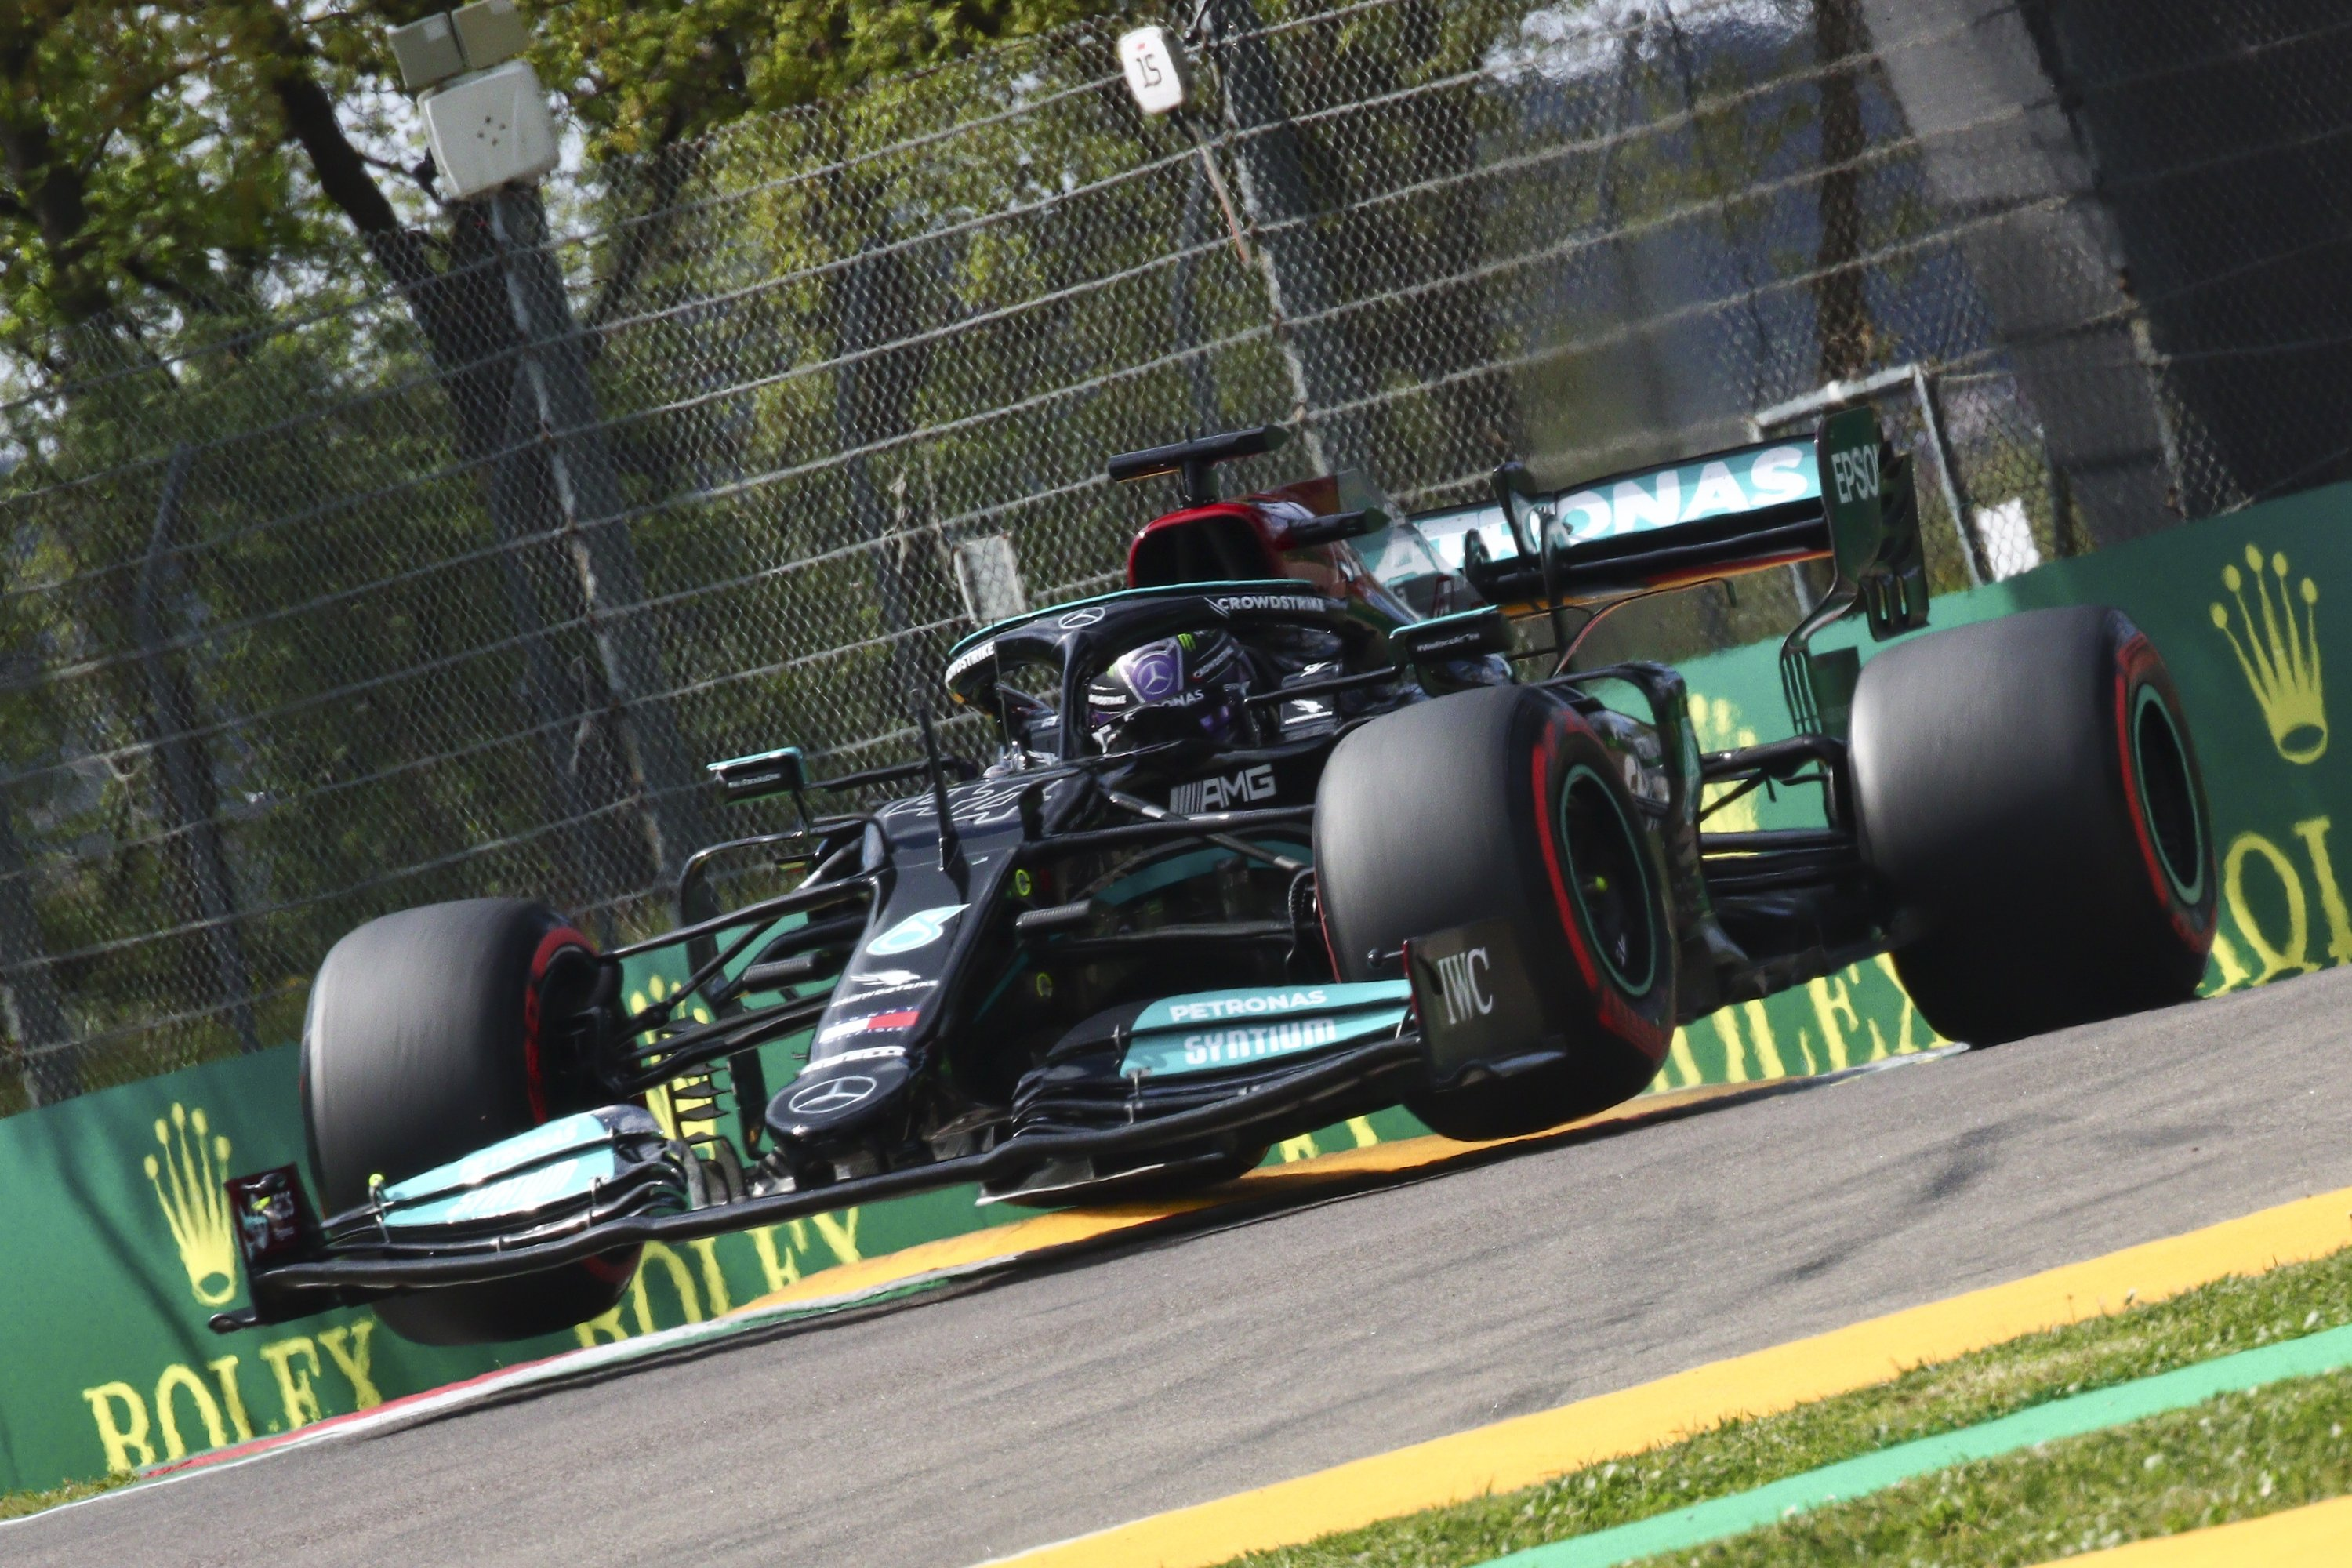 Mercedes-AMG Petronas' British driver Lewis Hamilton in action during the qualifying session of the Formula One Emilia-Romagna Grand Prix at Imola, Italy, April 17, 2021. (EPA Photo)